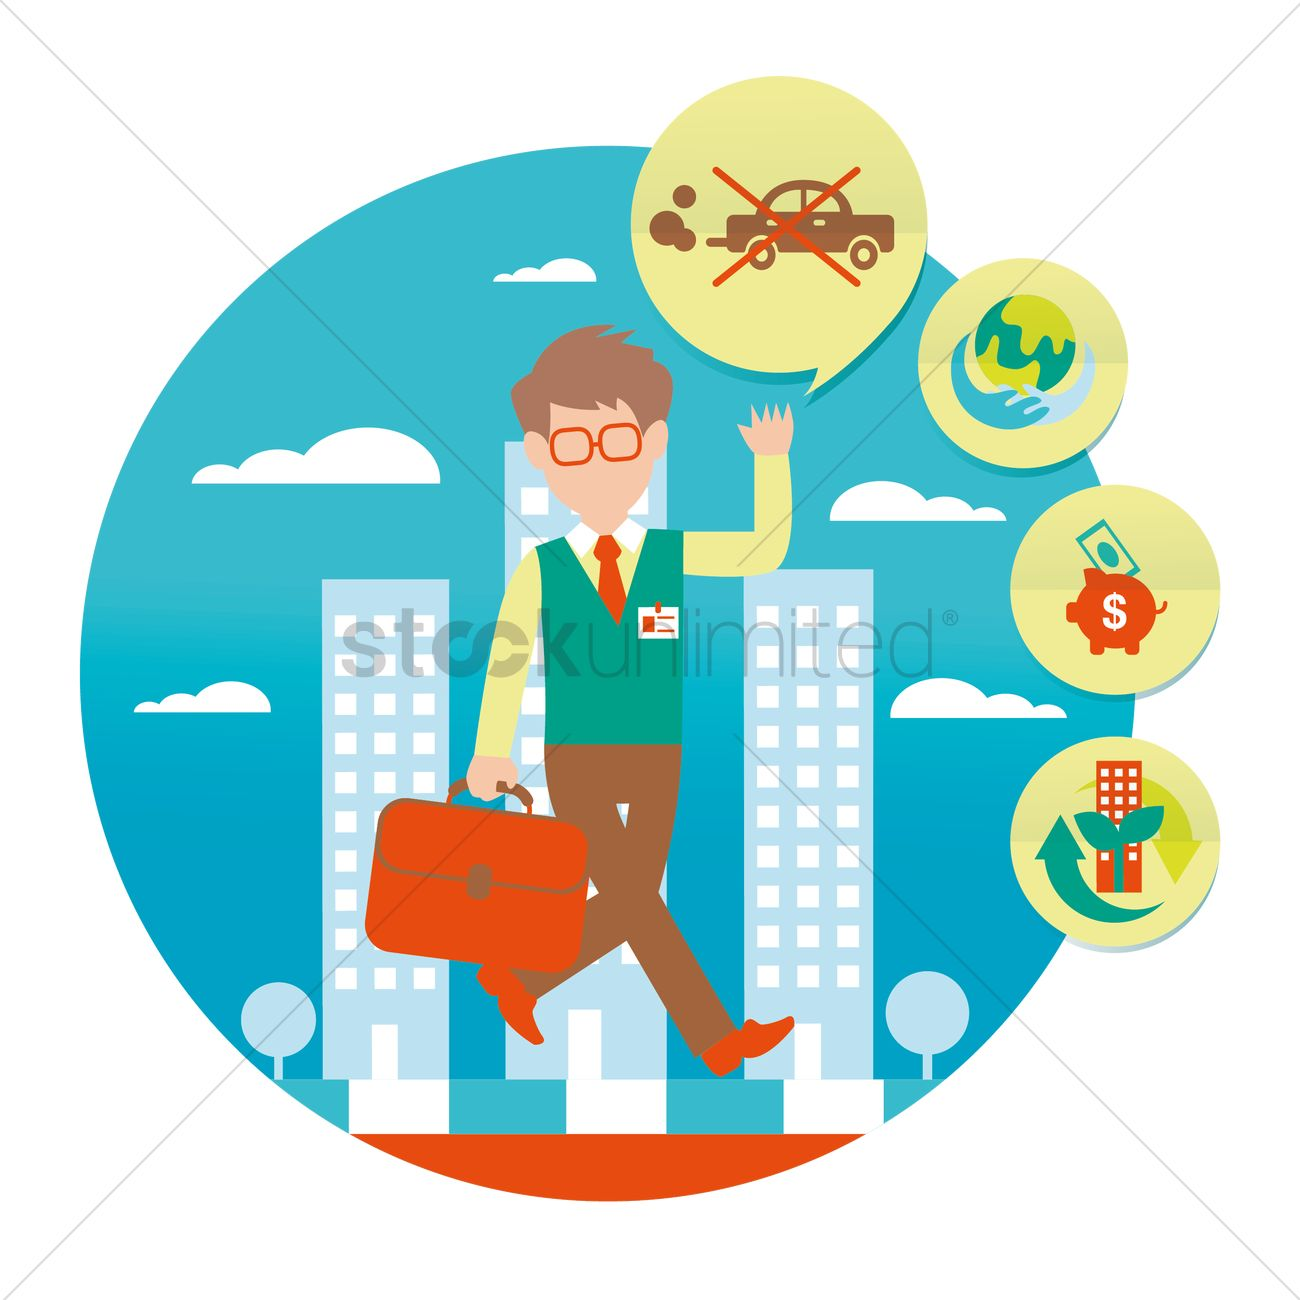 Instead clipart image freeuse Free Man walking instead of driving Vector Image - 1509165 ... image freeuse